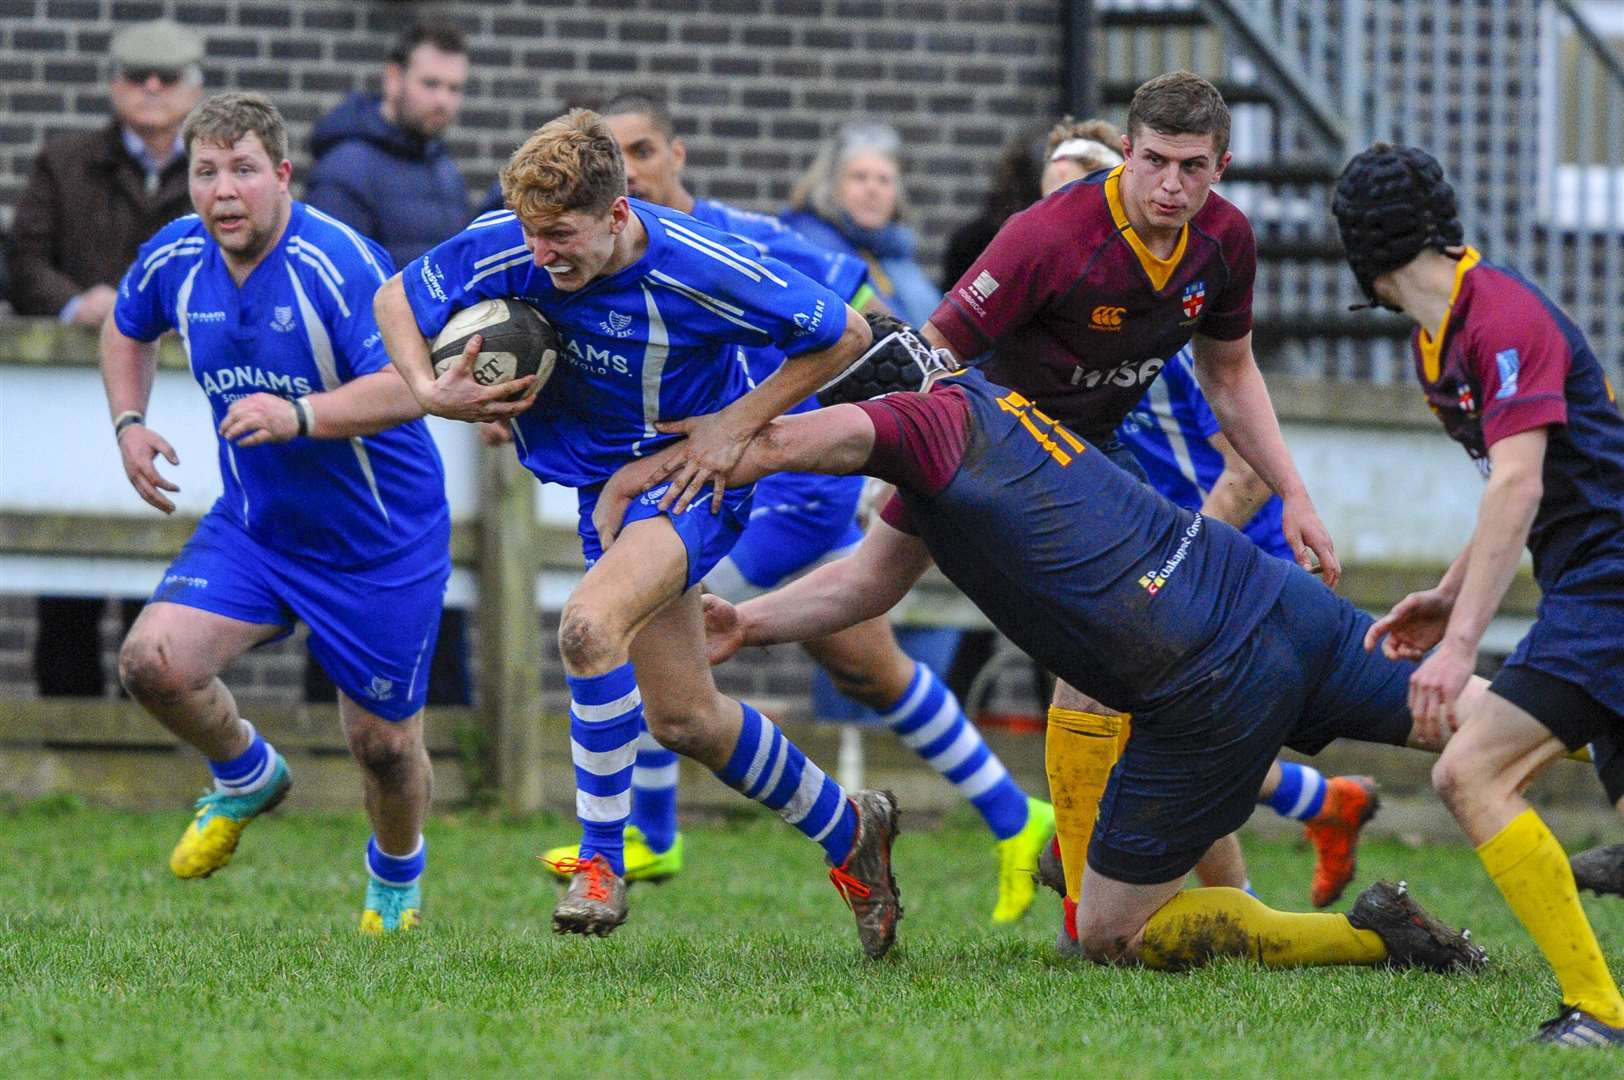 Rugby action from Diss v HAC - Will Thomson..Picture: Mark Bullimore Photography. (7528159)